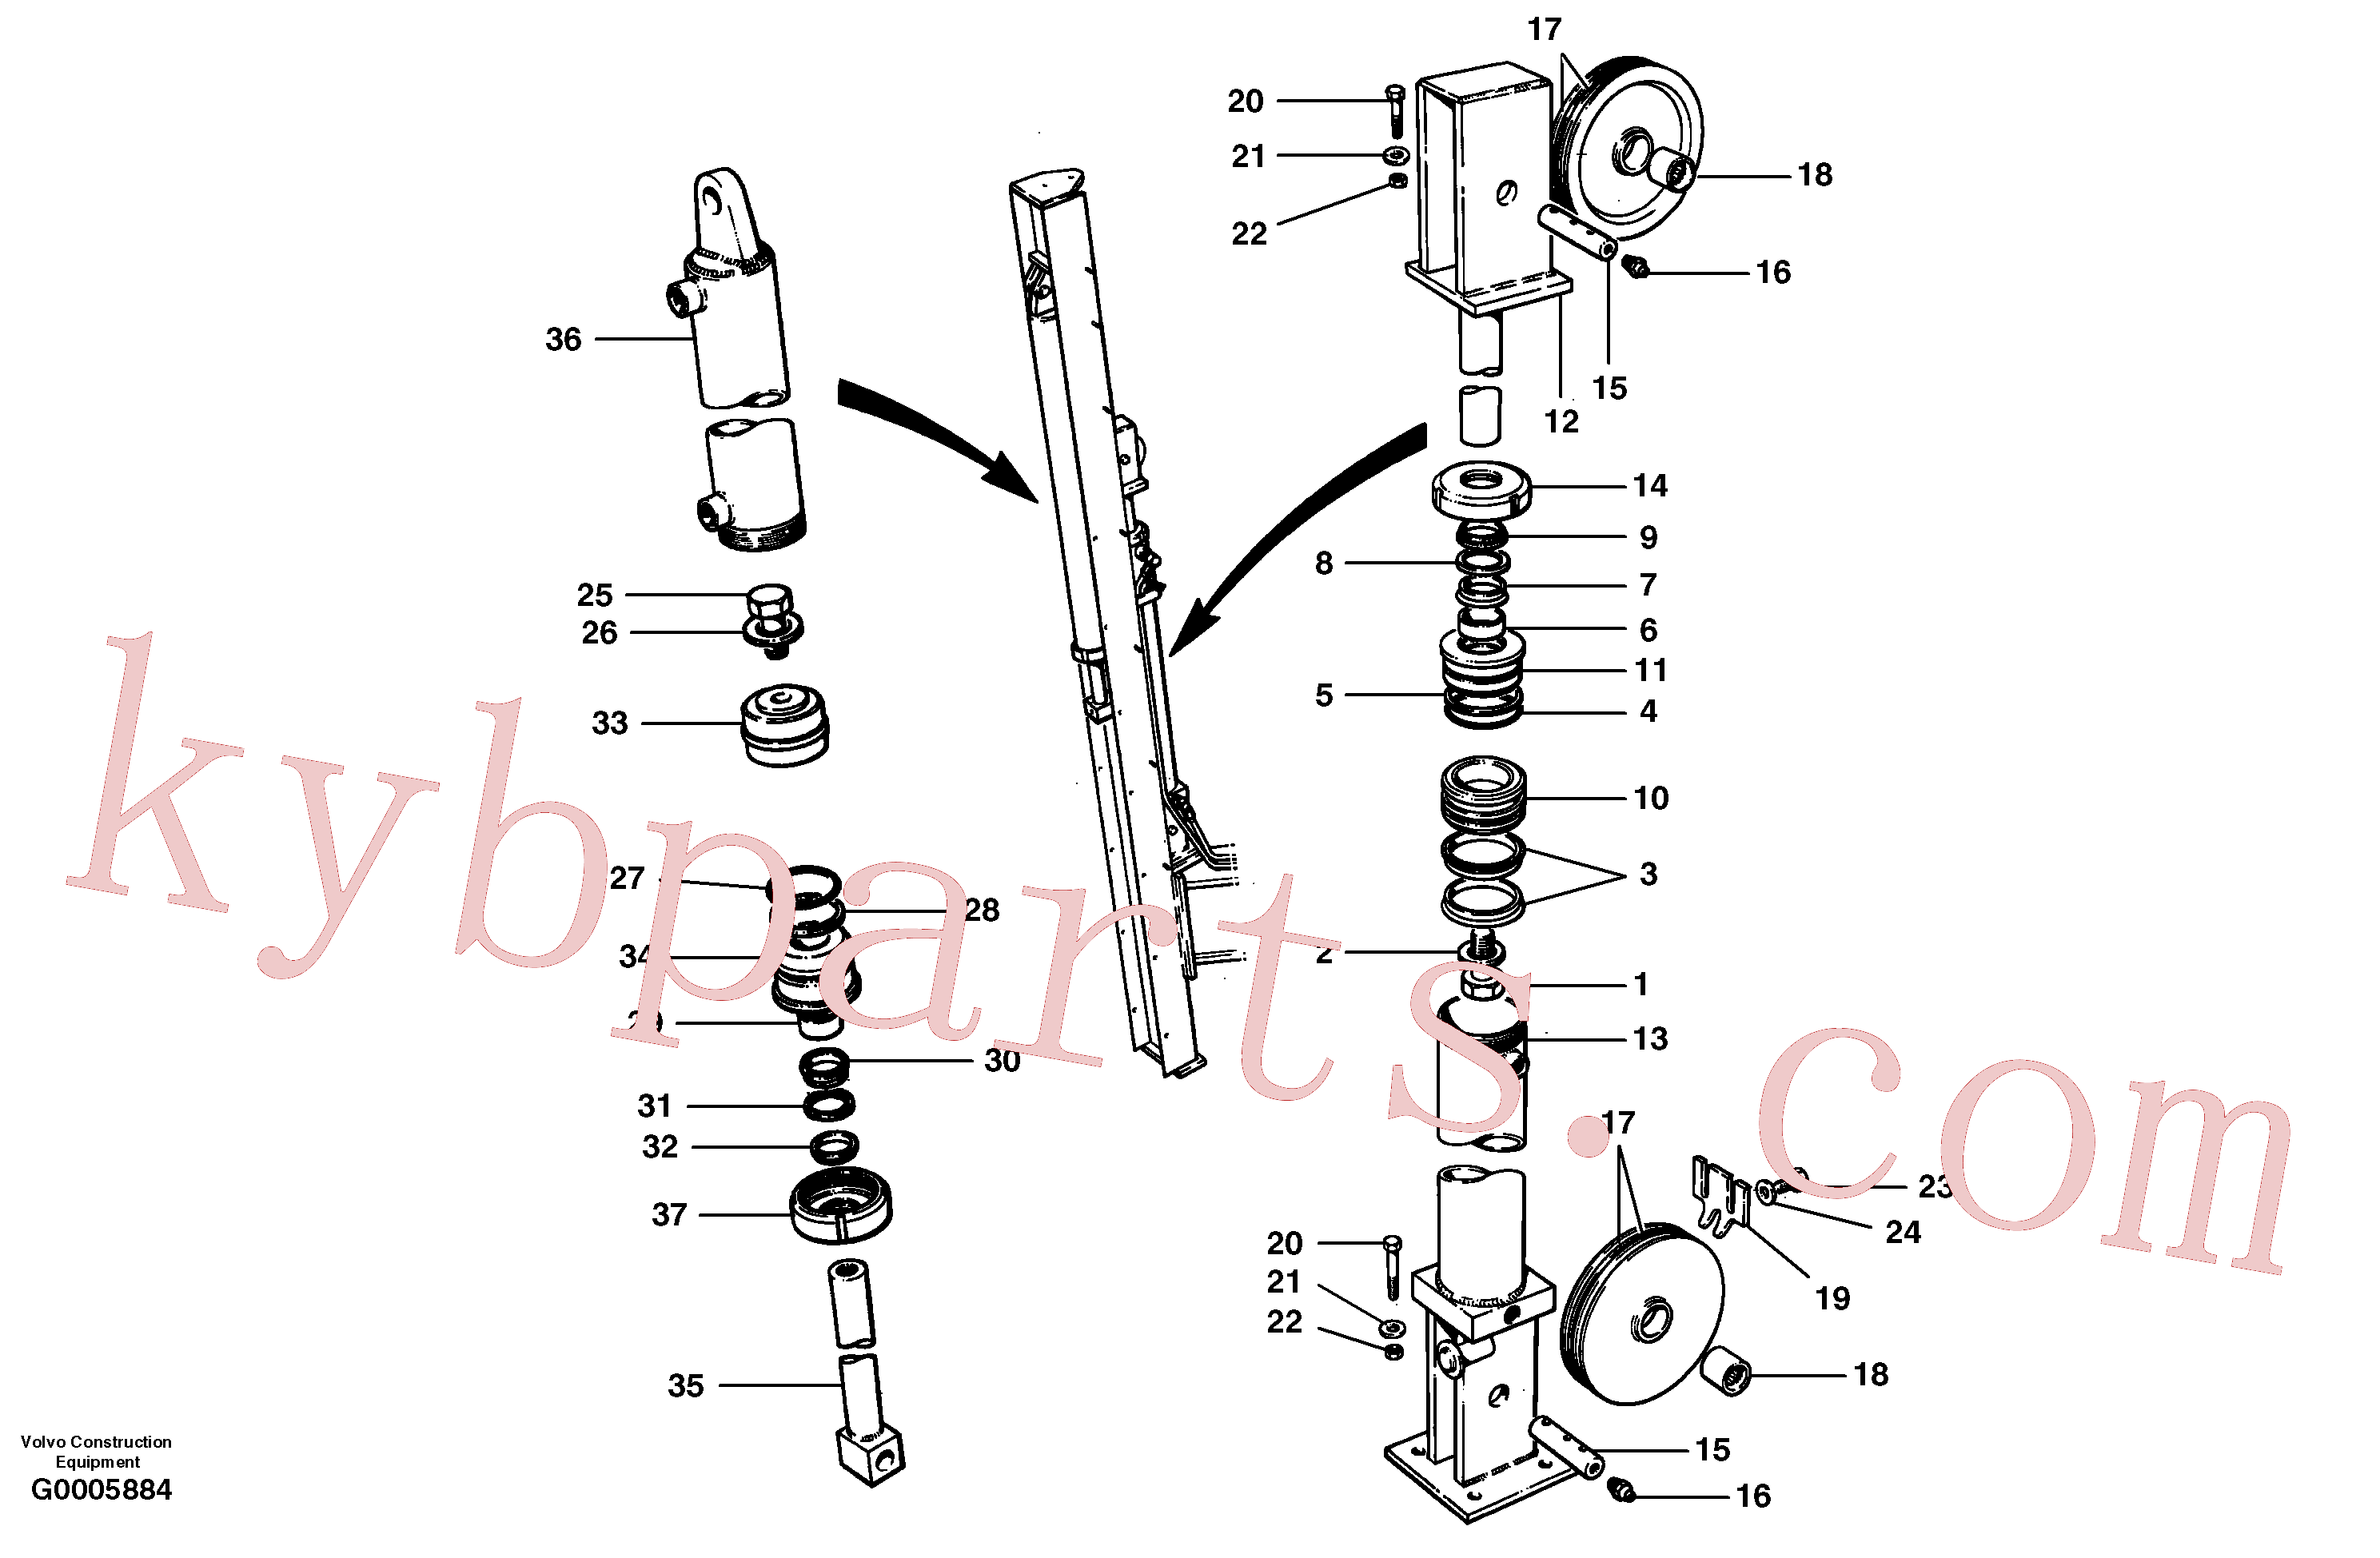 CH97828 for Volvo Wing cylinders - rear mast - cable wing(G0005884 assembly)